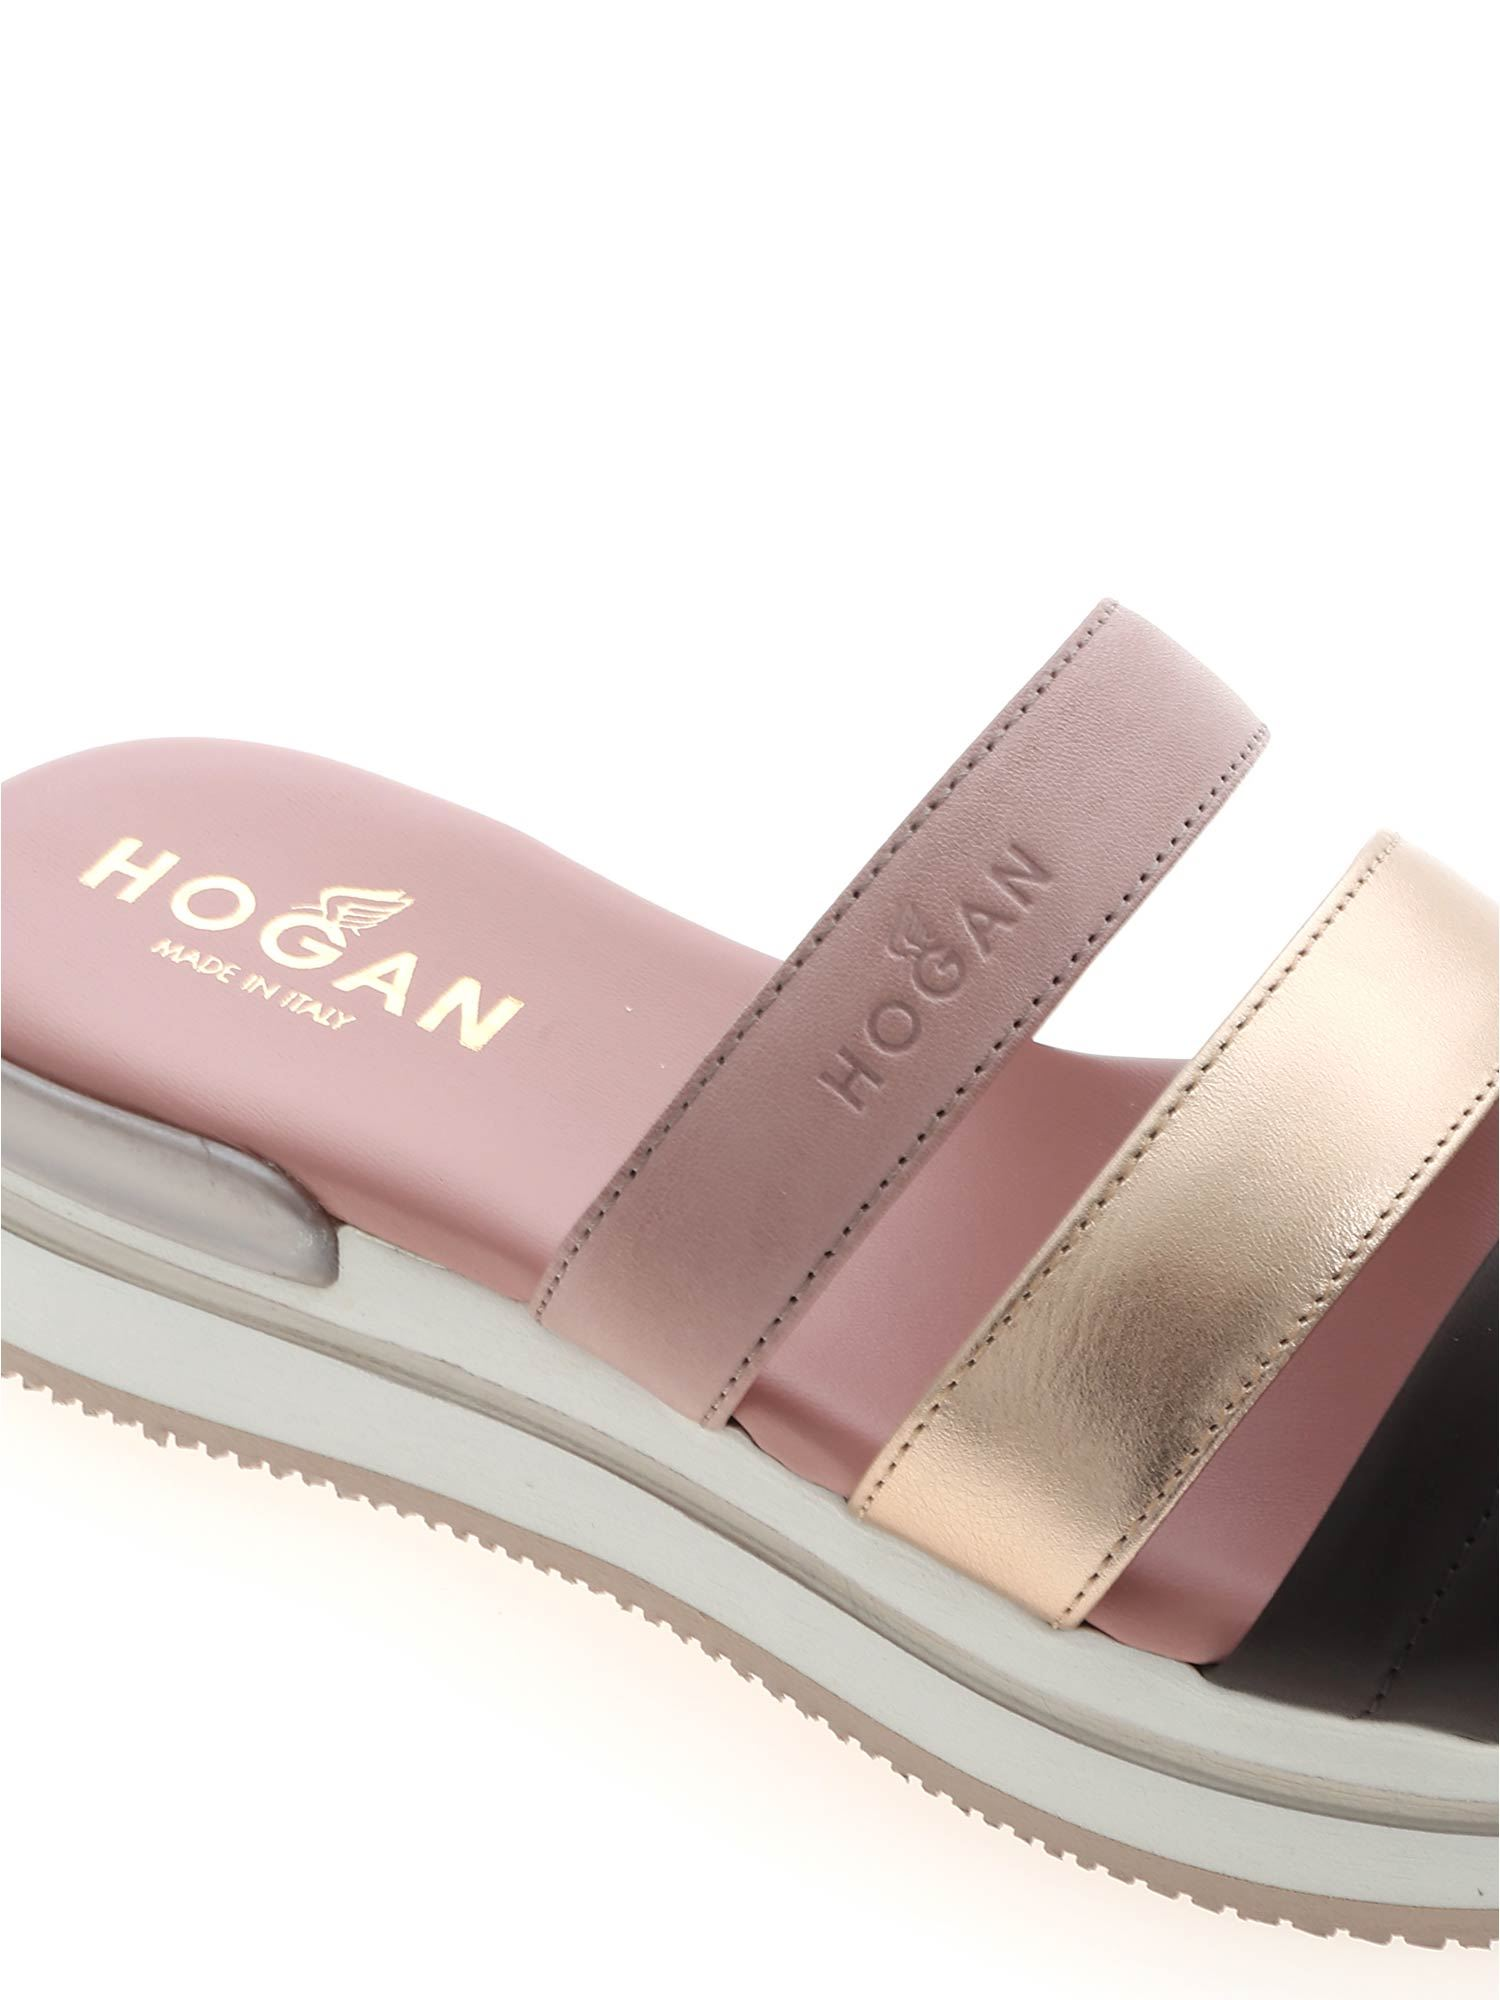 H257 SLIPPERS IN PINK